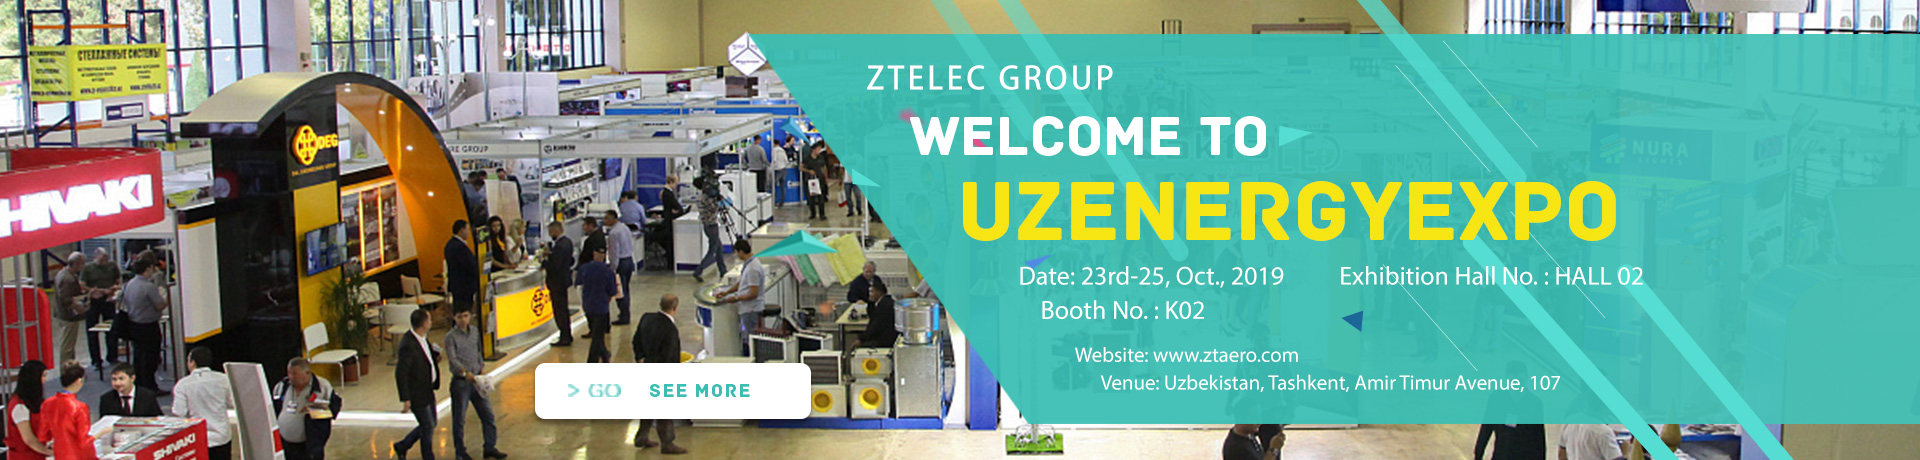 ZTELEC GROUP